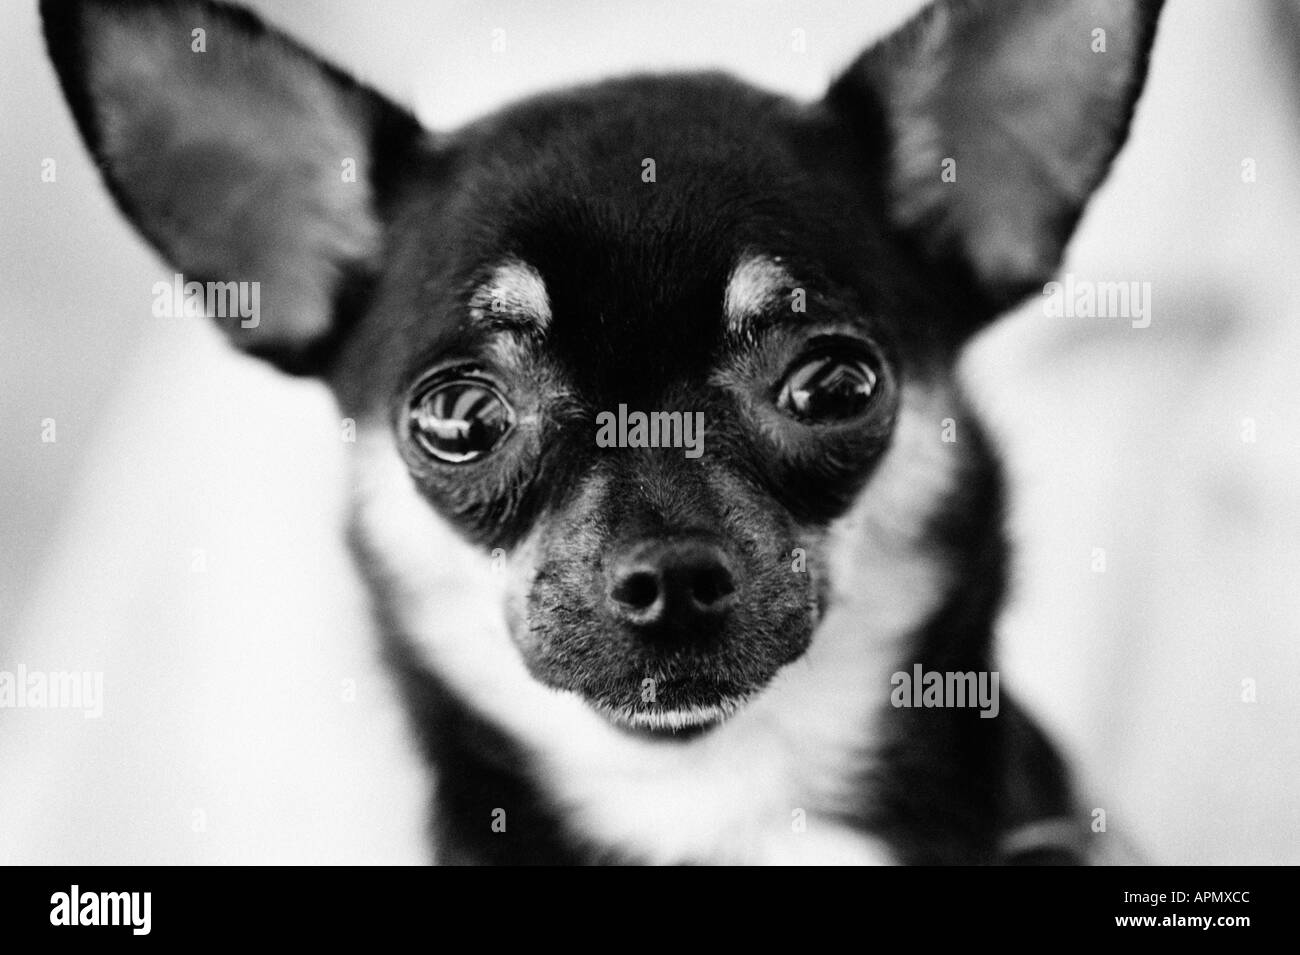 Black And White Small Dog Stockfotos & Black And White Small Dog ...